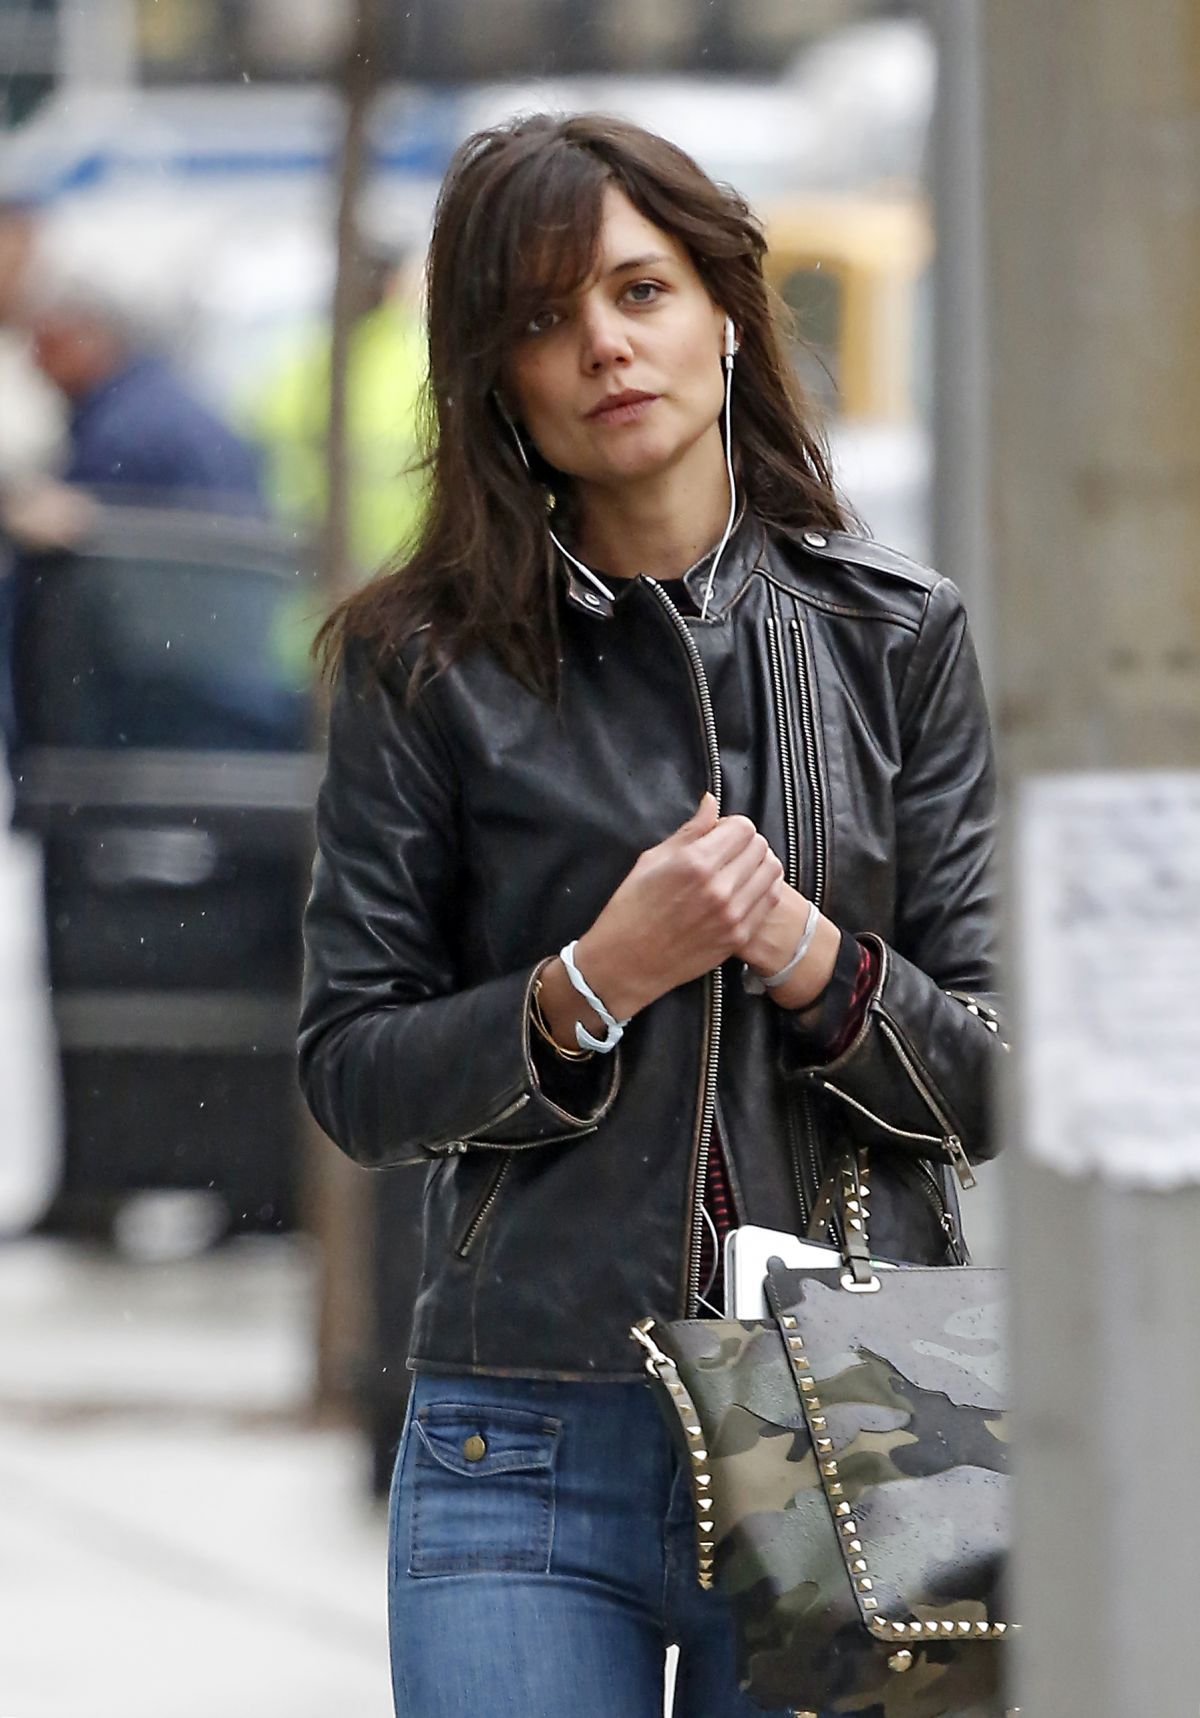 katie holmes in leather jacket and jeans out in new york